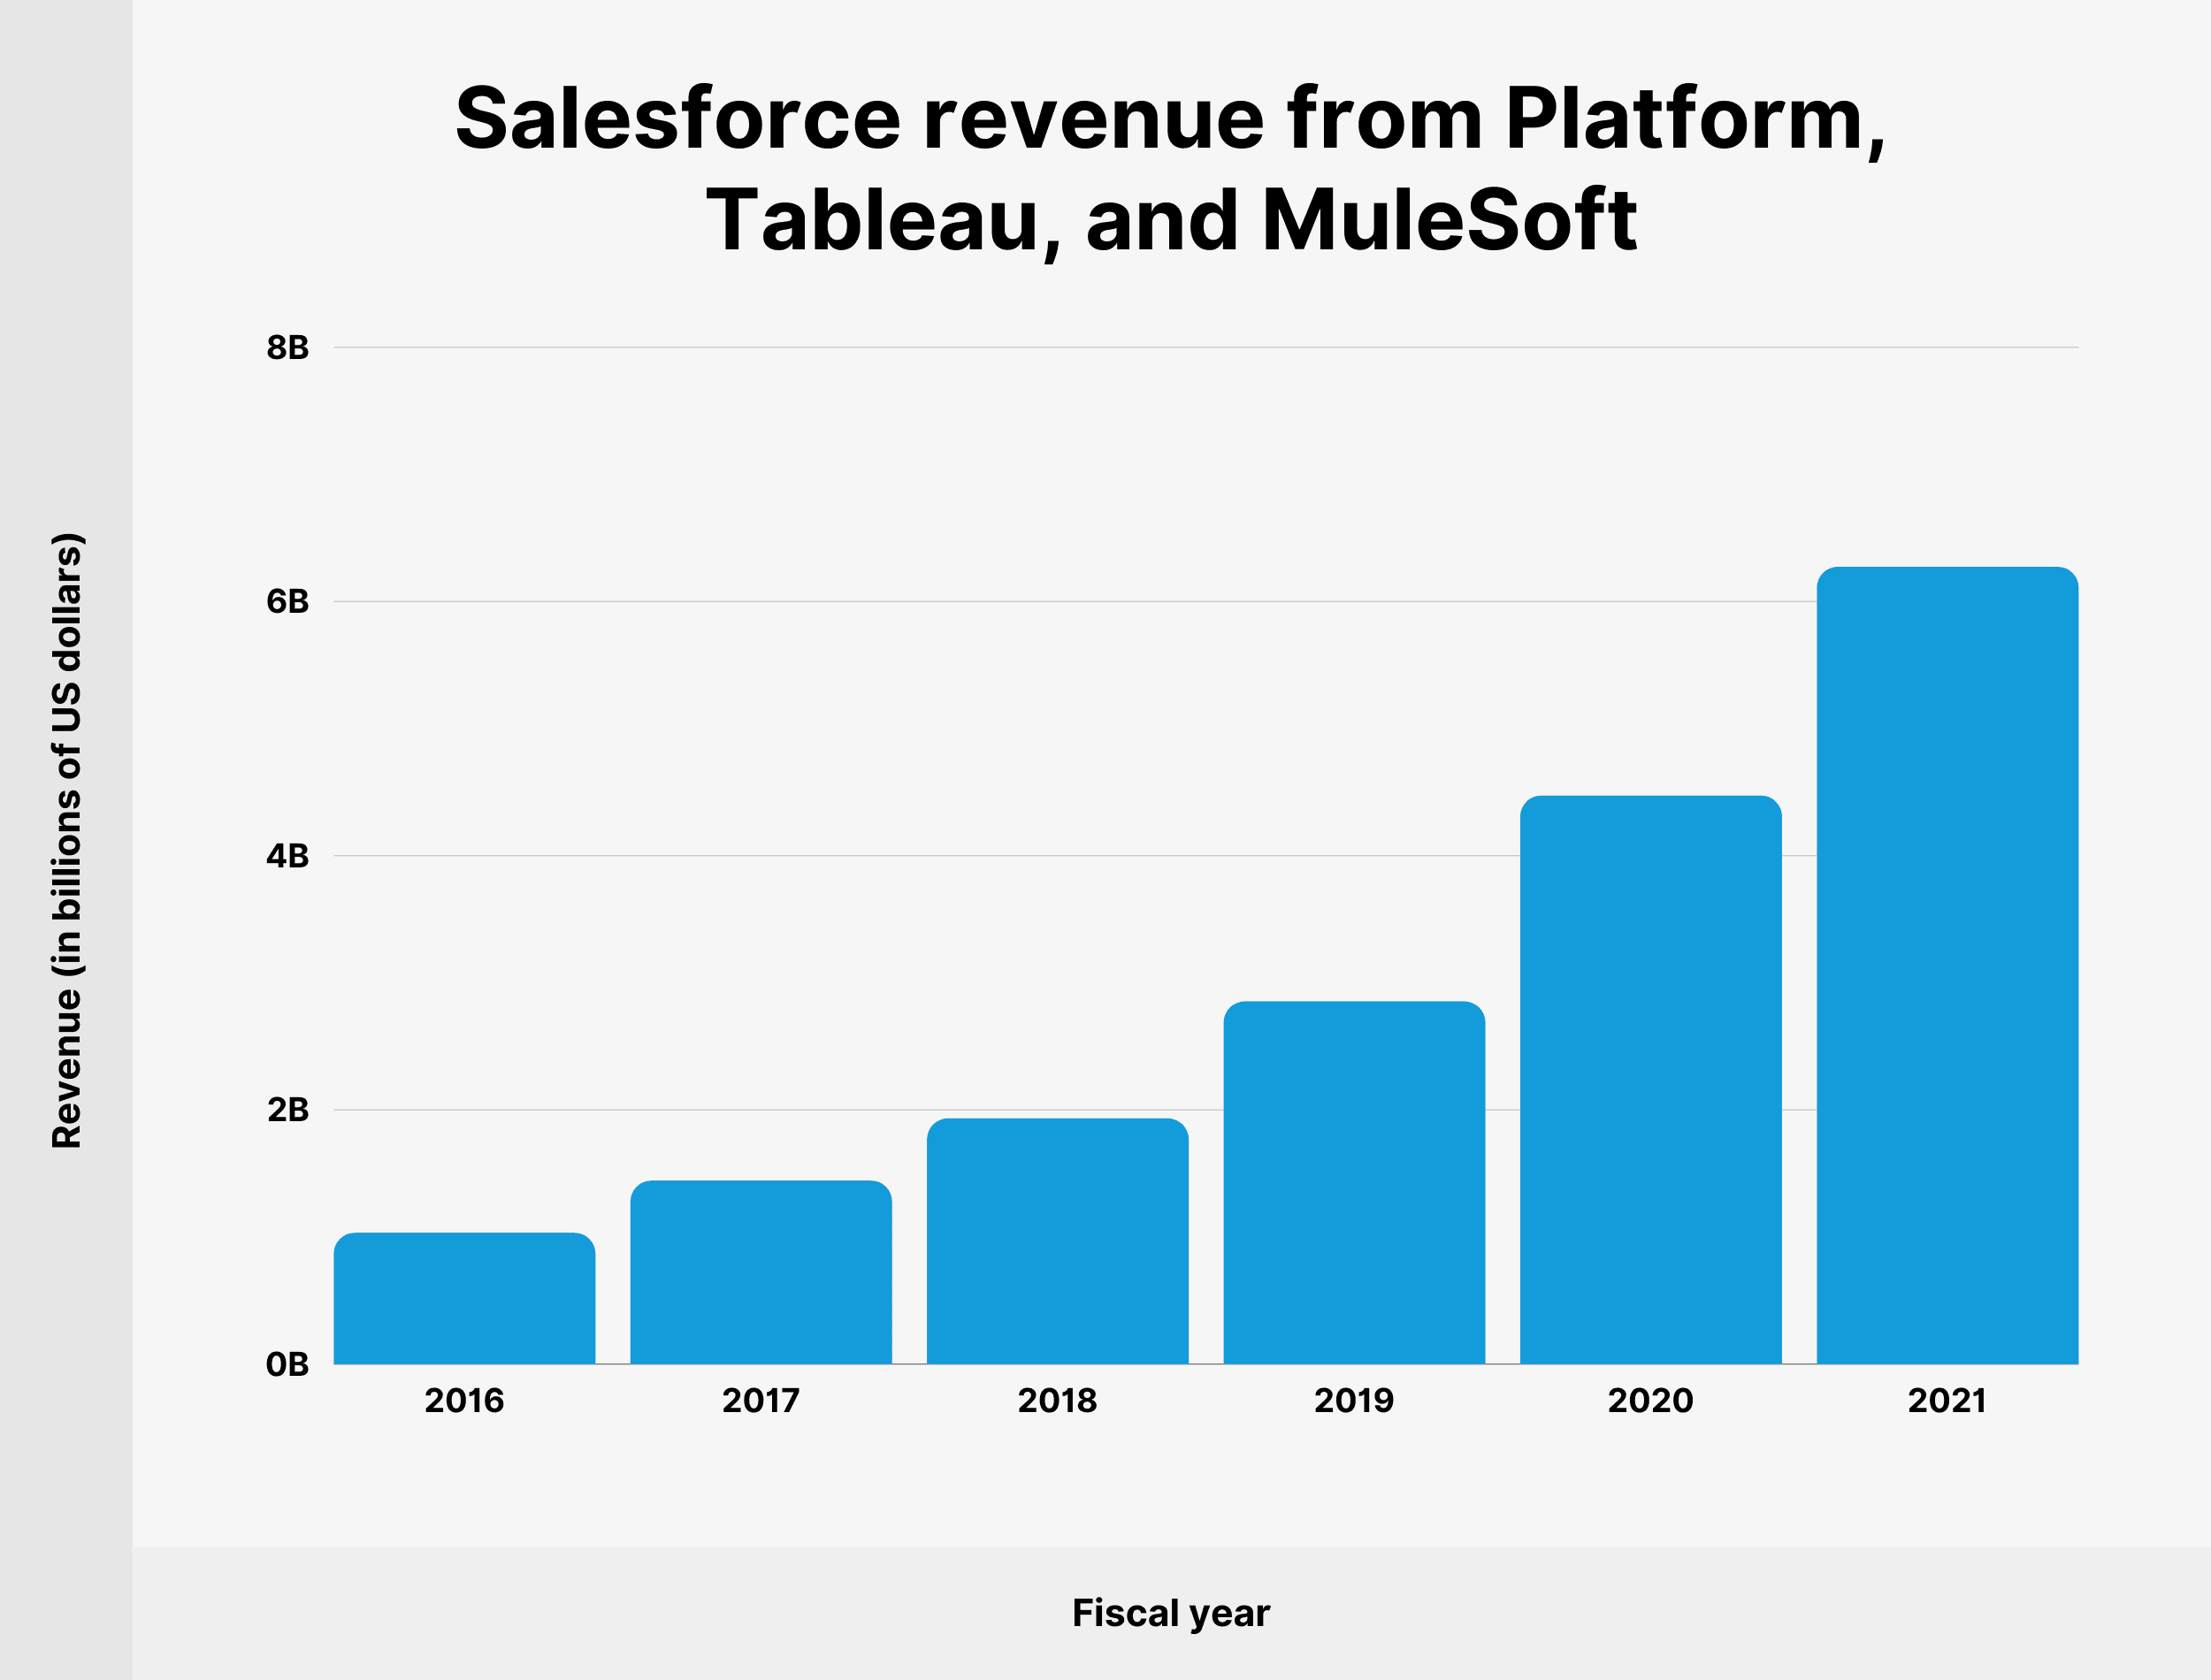 Salesforce revenue from Platform, Tableau, and MuleSoft